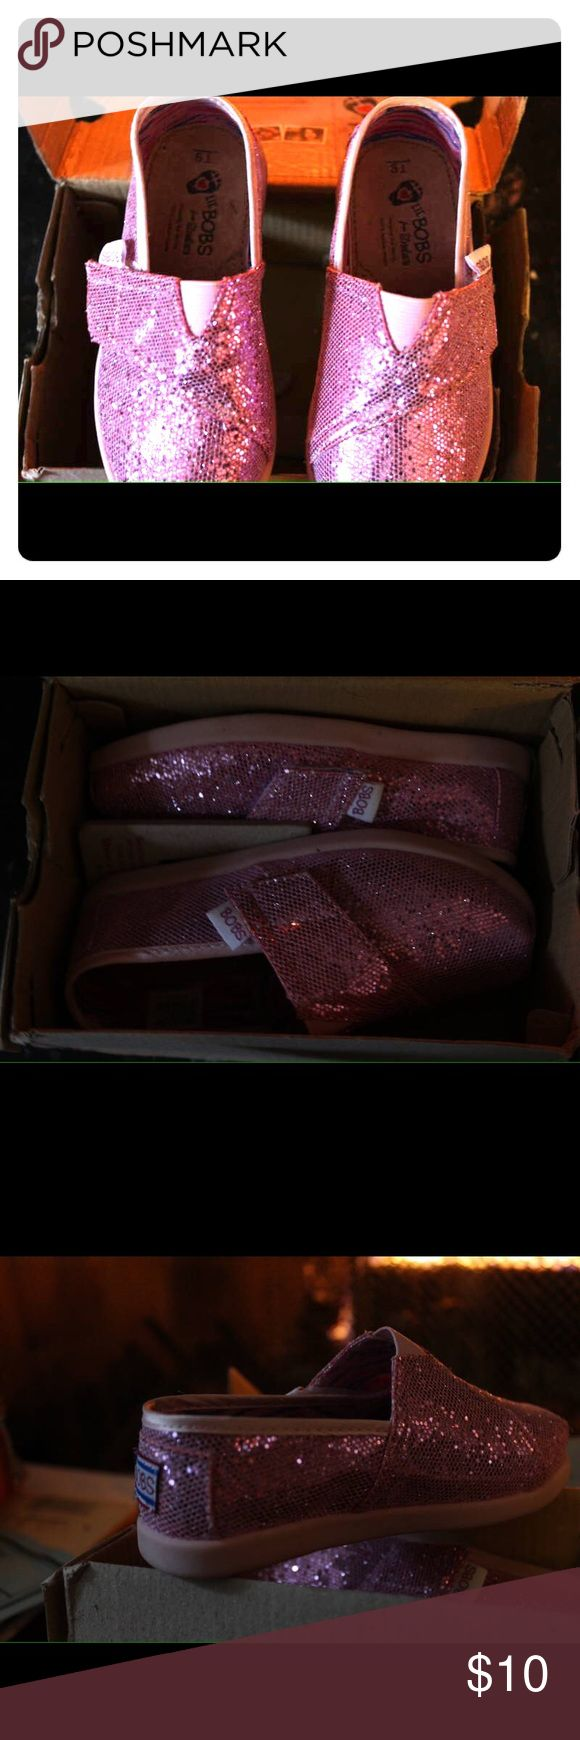 *For Katie* Lil bobs sparkly pink Skechers Pink, sequined kids lil' bobs (Skechers). Velcro closures.  New, never worn. Comes in original box. Skechers Shoes Sneakers